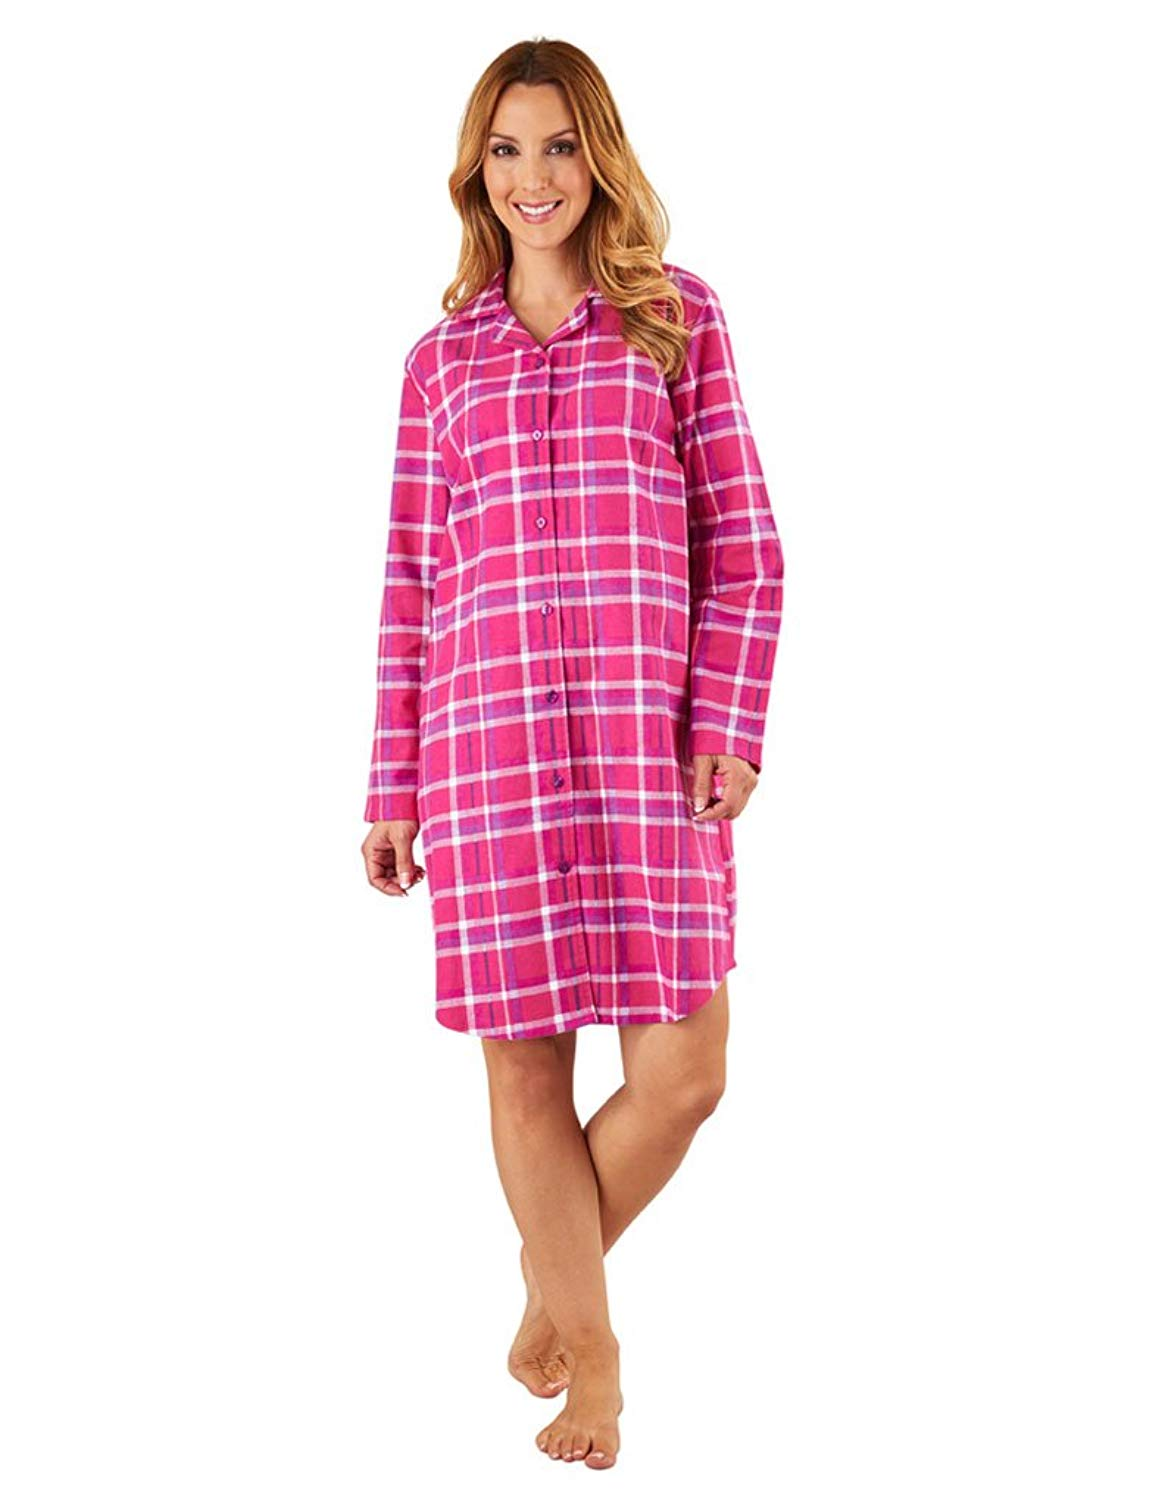 3ad1a3cfd8 Get Quotations · Slenderella NS8215 Women s Raspberry Pink Check Cotton  Nightshirt